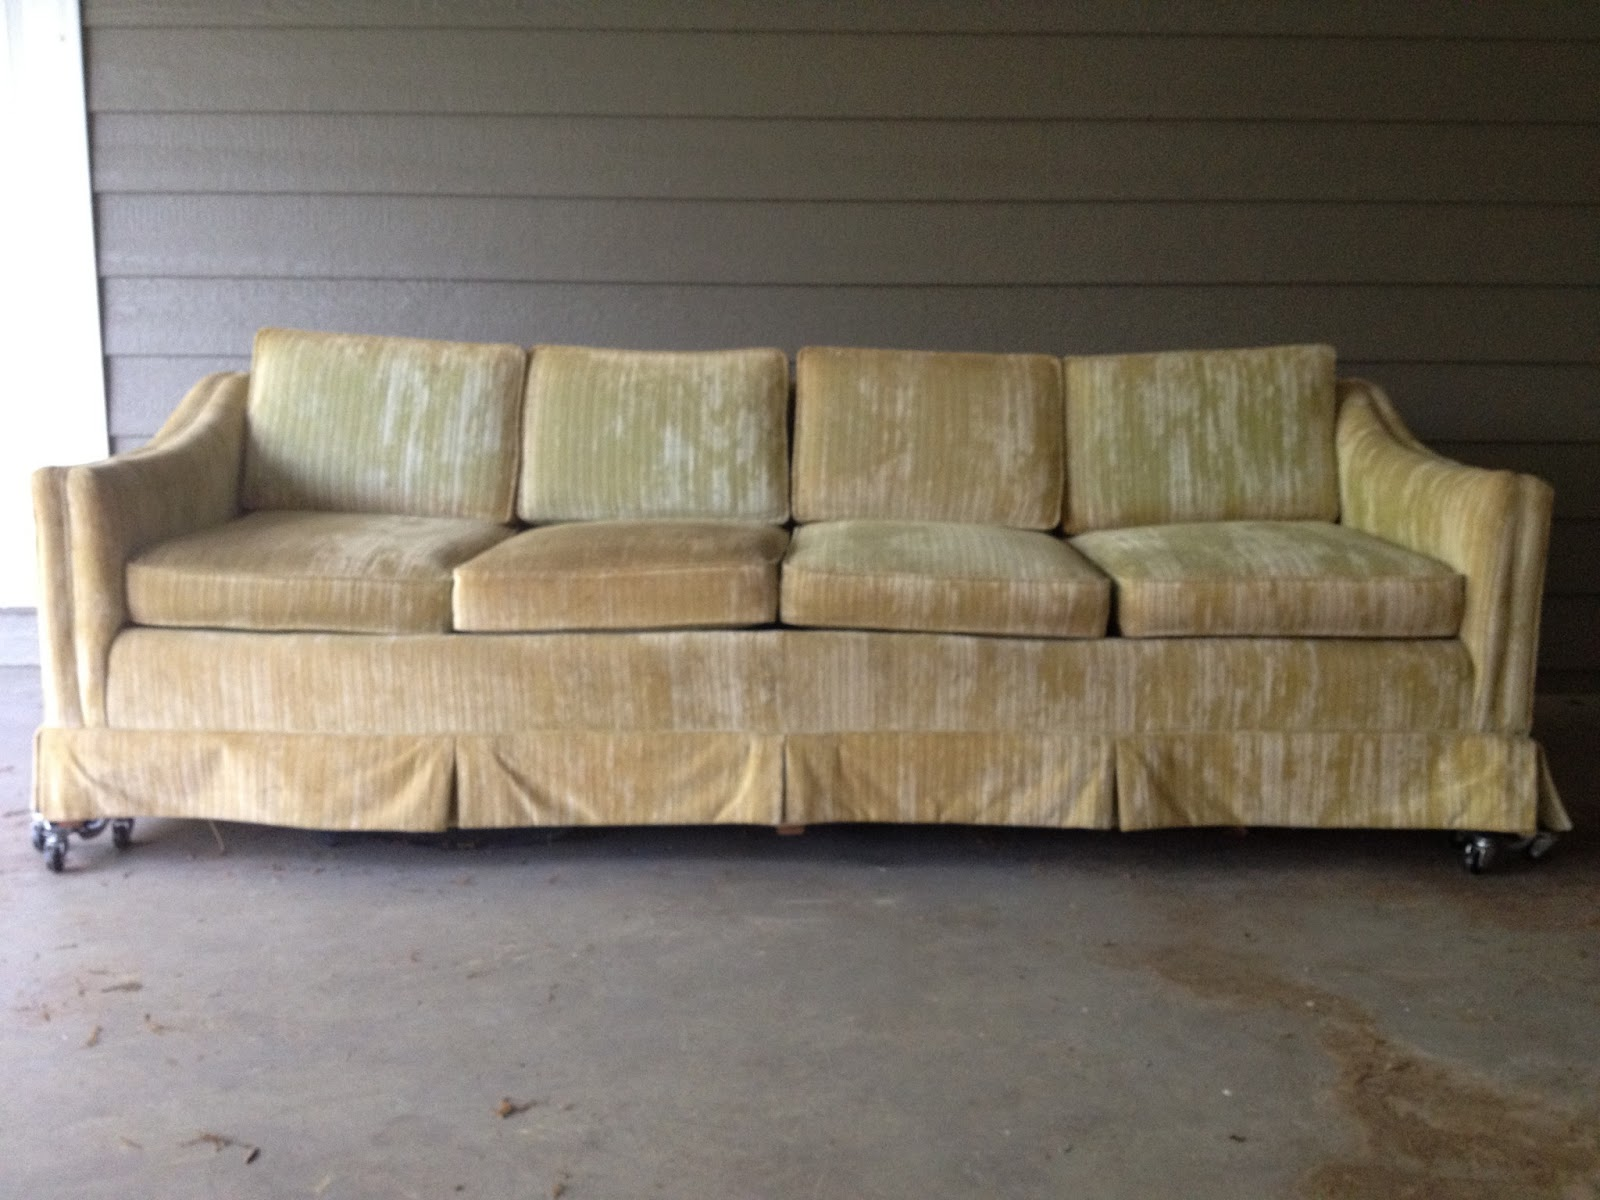 Between the rafters 60s mod couch reupholster installment 1 Reupholster loveseat